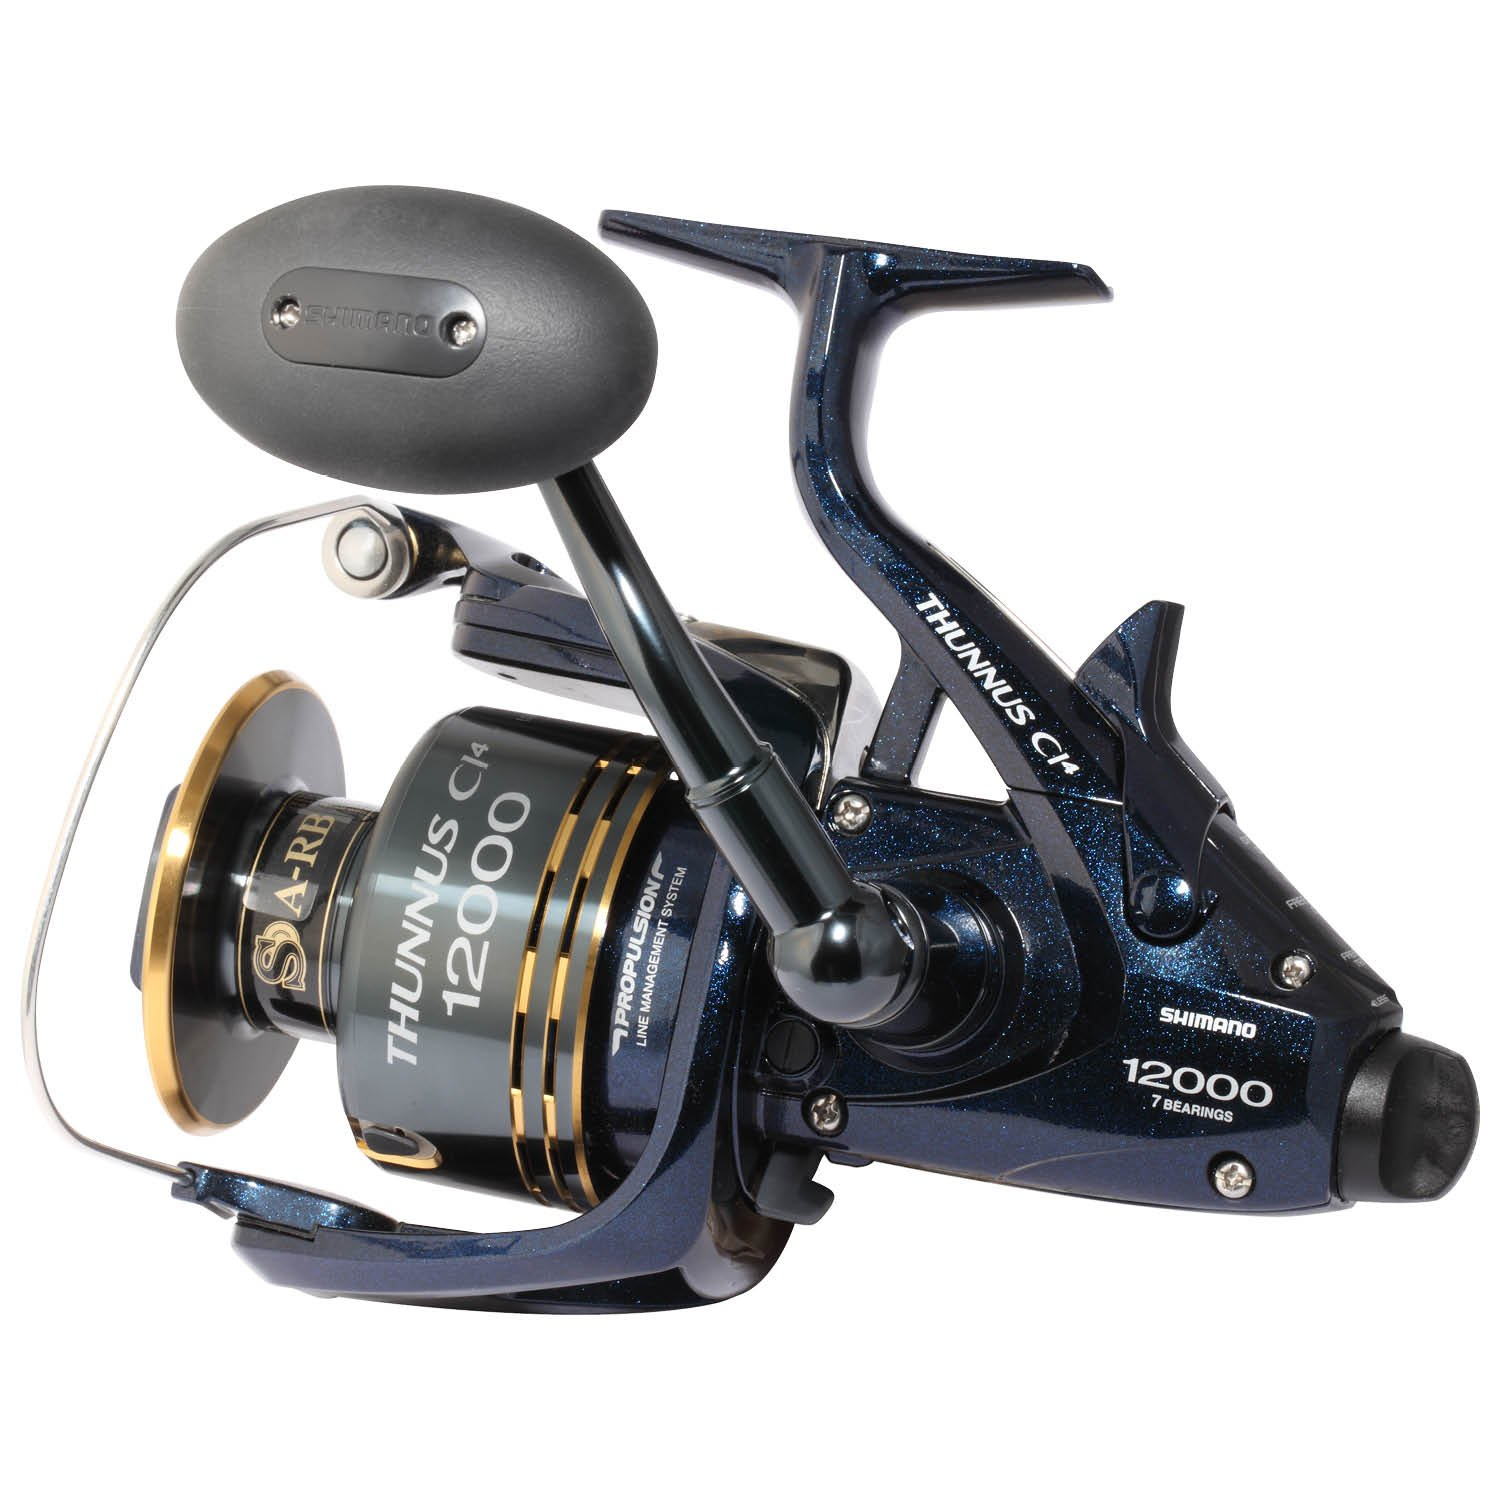 Shimano Thunnus 12000 C14 Saltwater Spinning Reel Review